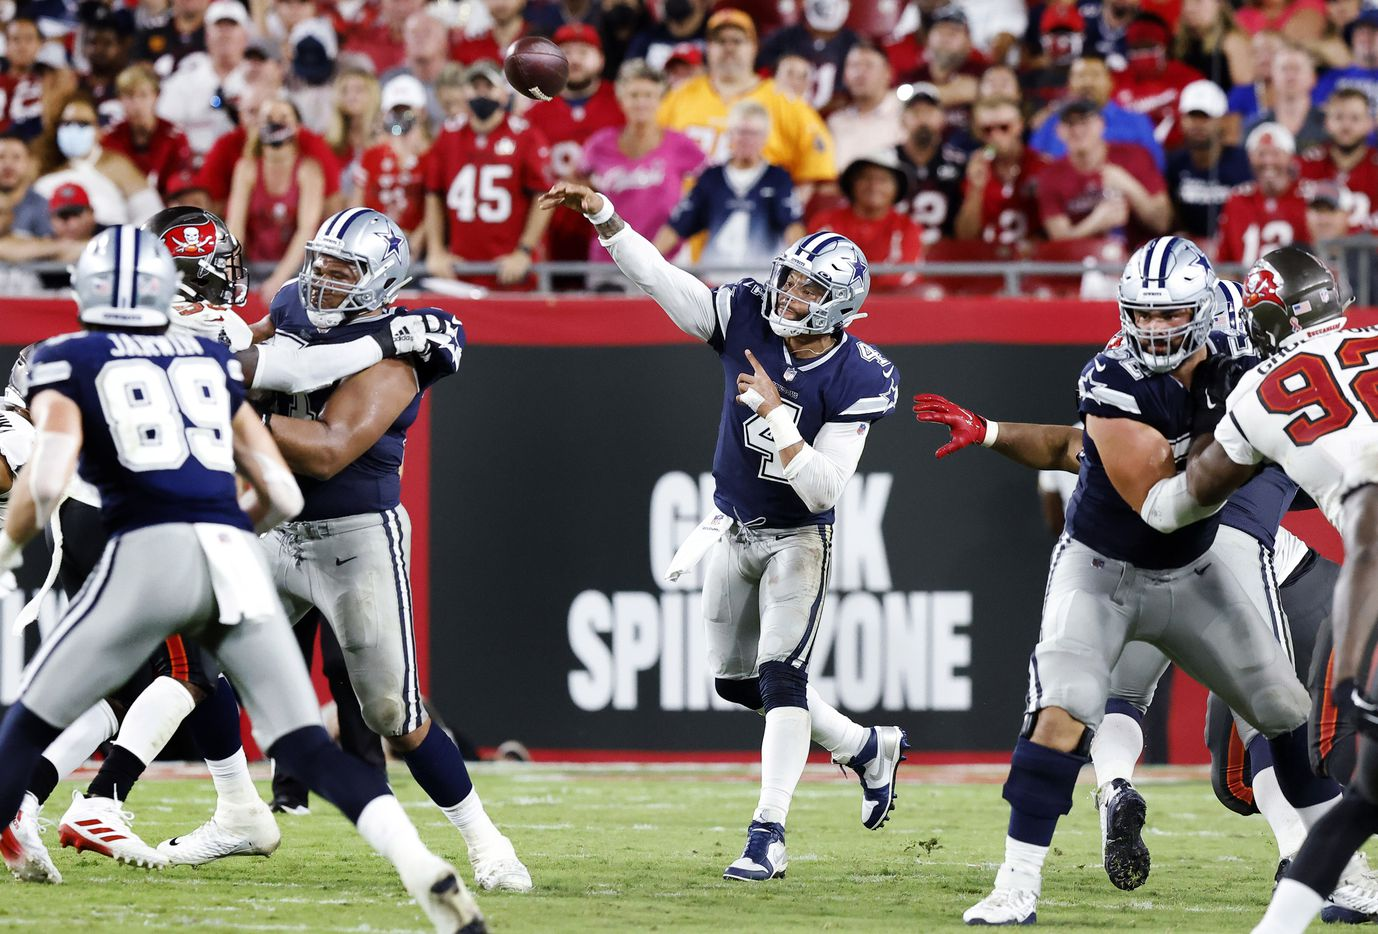 Dallas Cowboys quarterback Dak Prescott (4) throws a deep third quarter pass to wide receiver CeeDee Lamb (88), only to have it intercepted at Raymond James Stadium in Tampa, Florida, Thursday, September 9, 2021. The Cowboys faced the Tampa Bay Buccaneers in the NFL season opener. (Tom Fox/The Dallas Morning News)